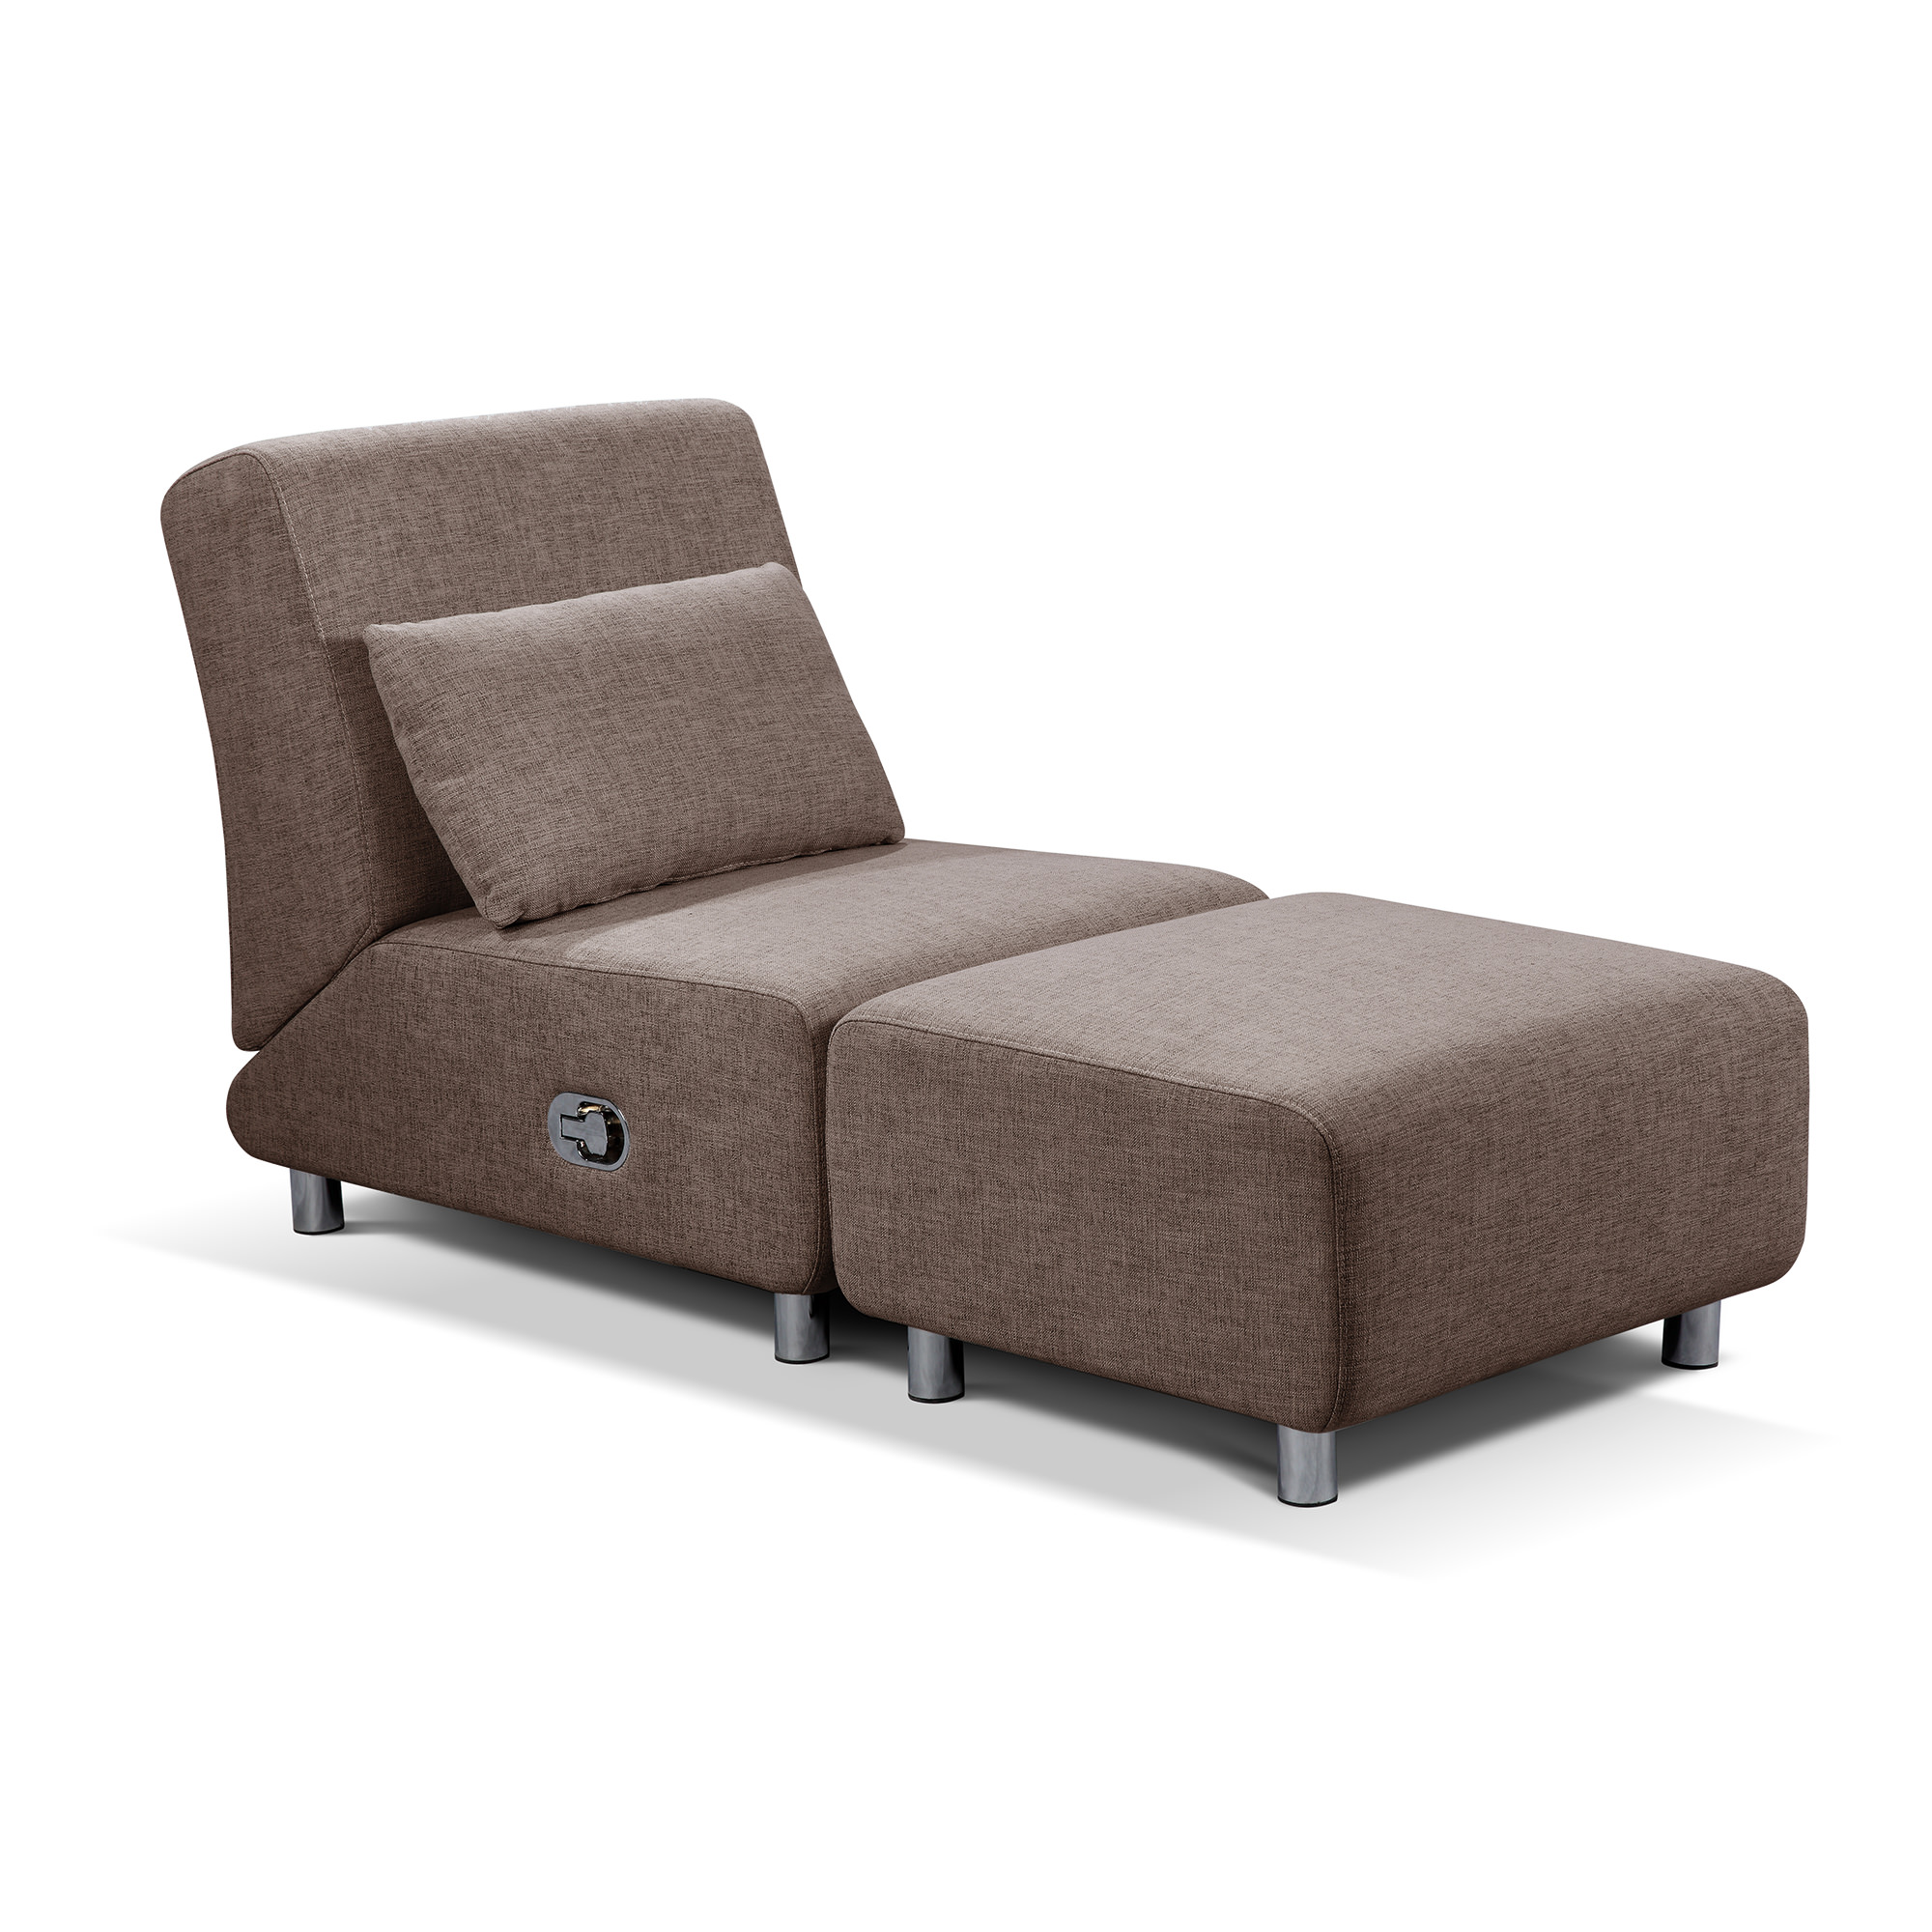 Sofa bed available in philippines sofa the honoroak Affordable home furnitures philippines